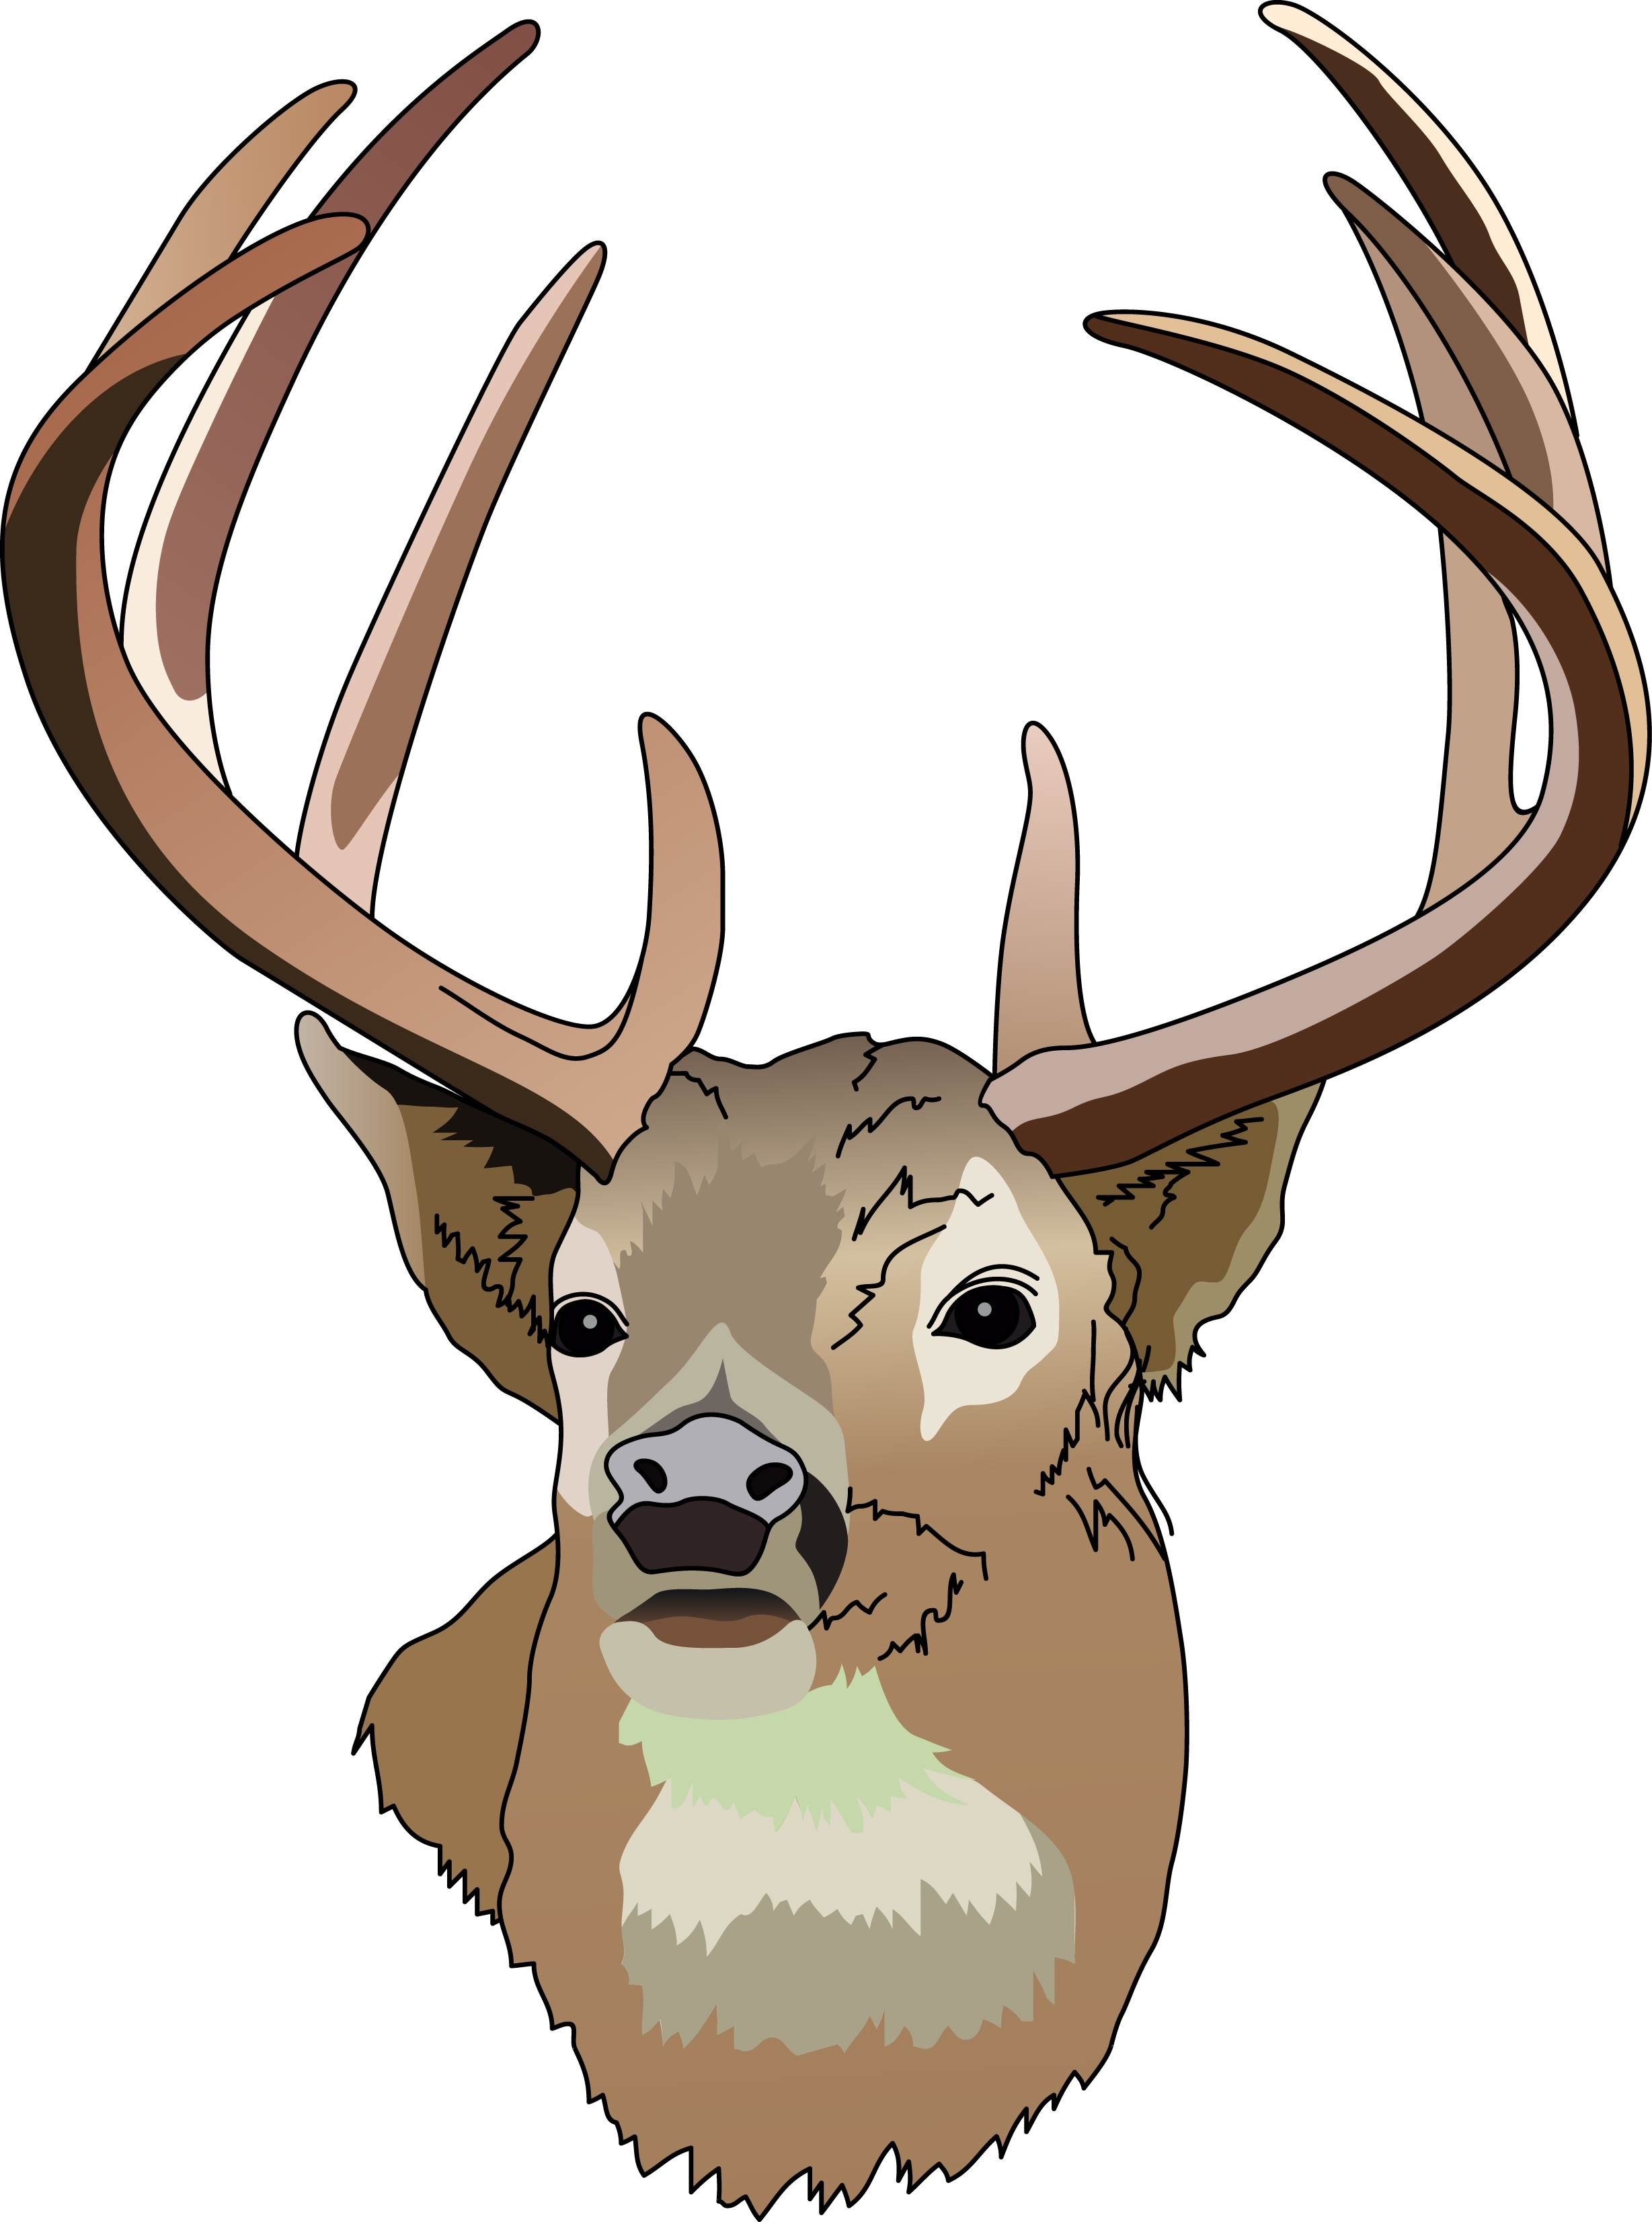 Ssckull clipart whitetail deer Deer images White free Cliparting